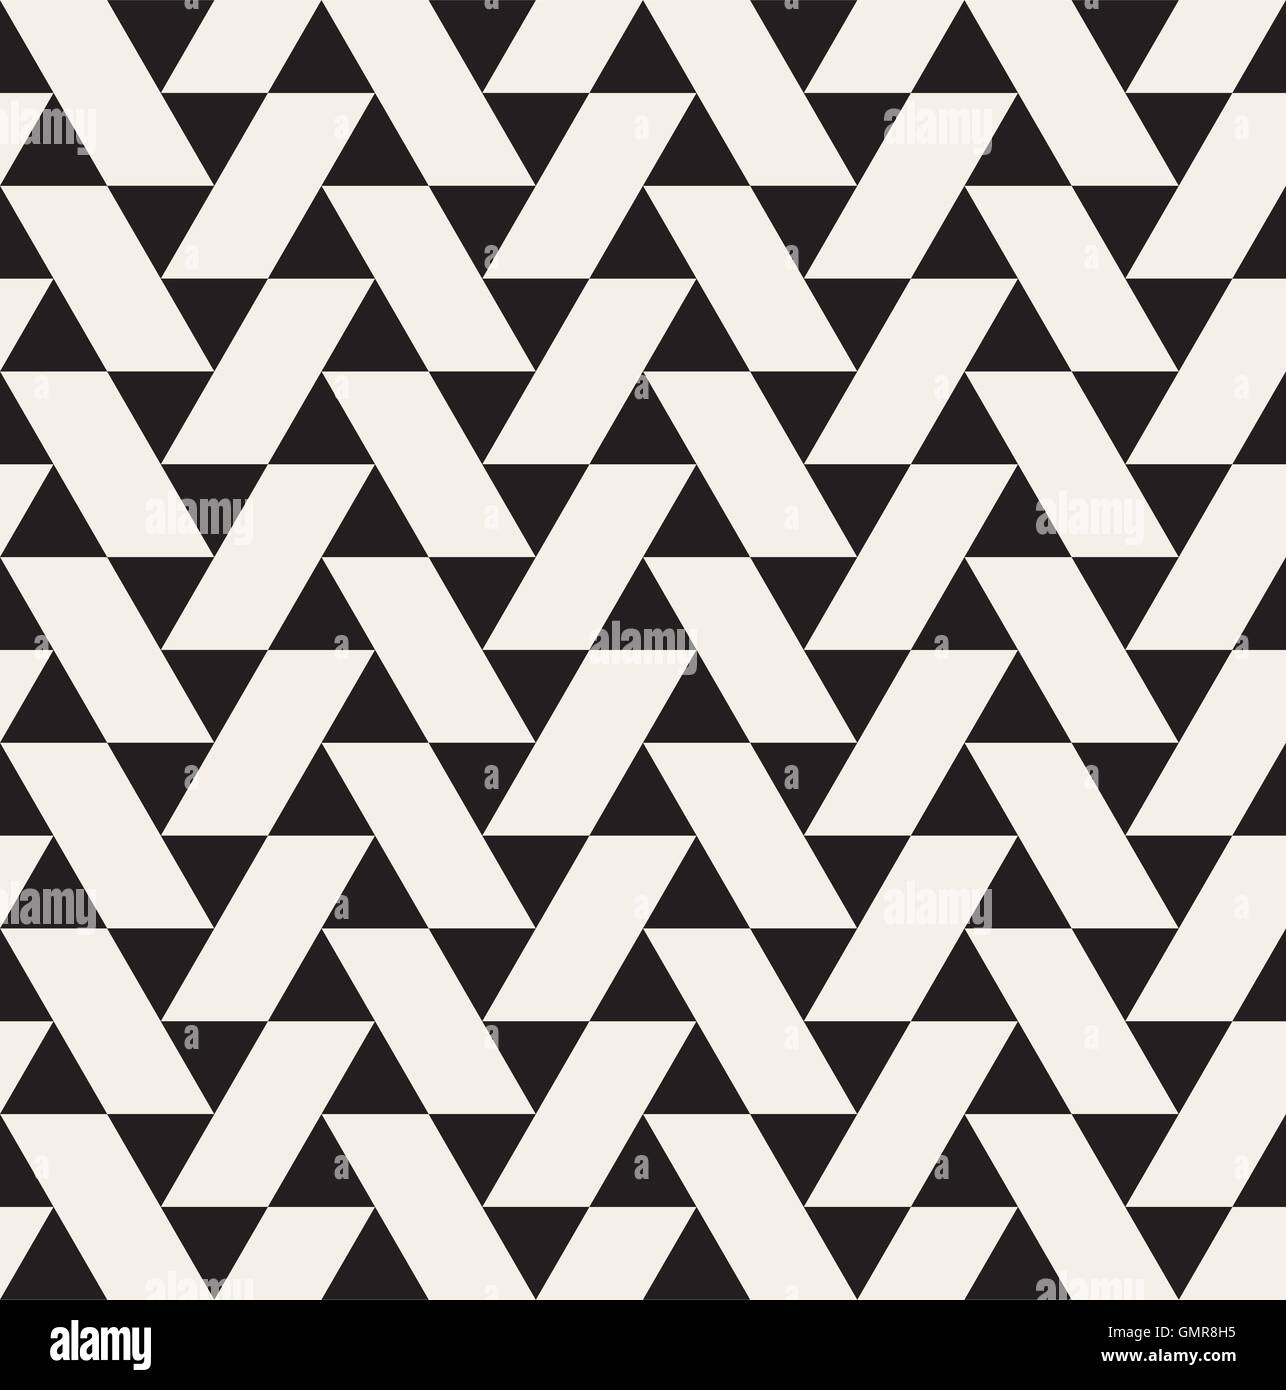 Vector Seamless Black and White Geometric Triangle Tiling Pattern ...